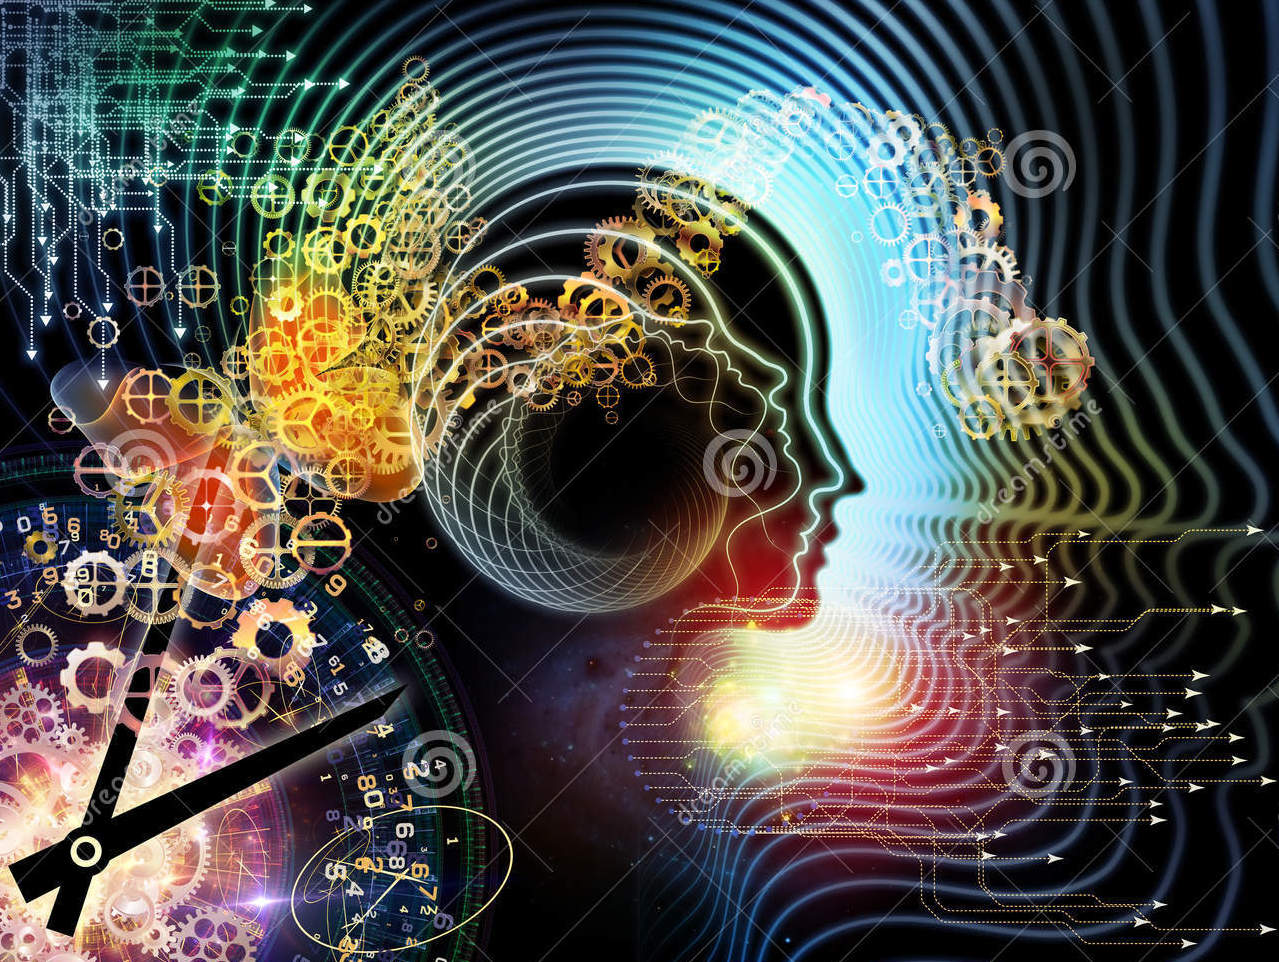 times-human-mind-background-design-feature-lines-symbolic-elements-subject-consciousness-imagination-science-33332065